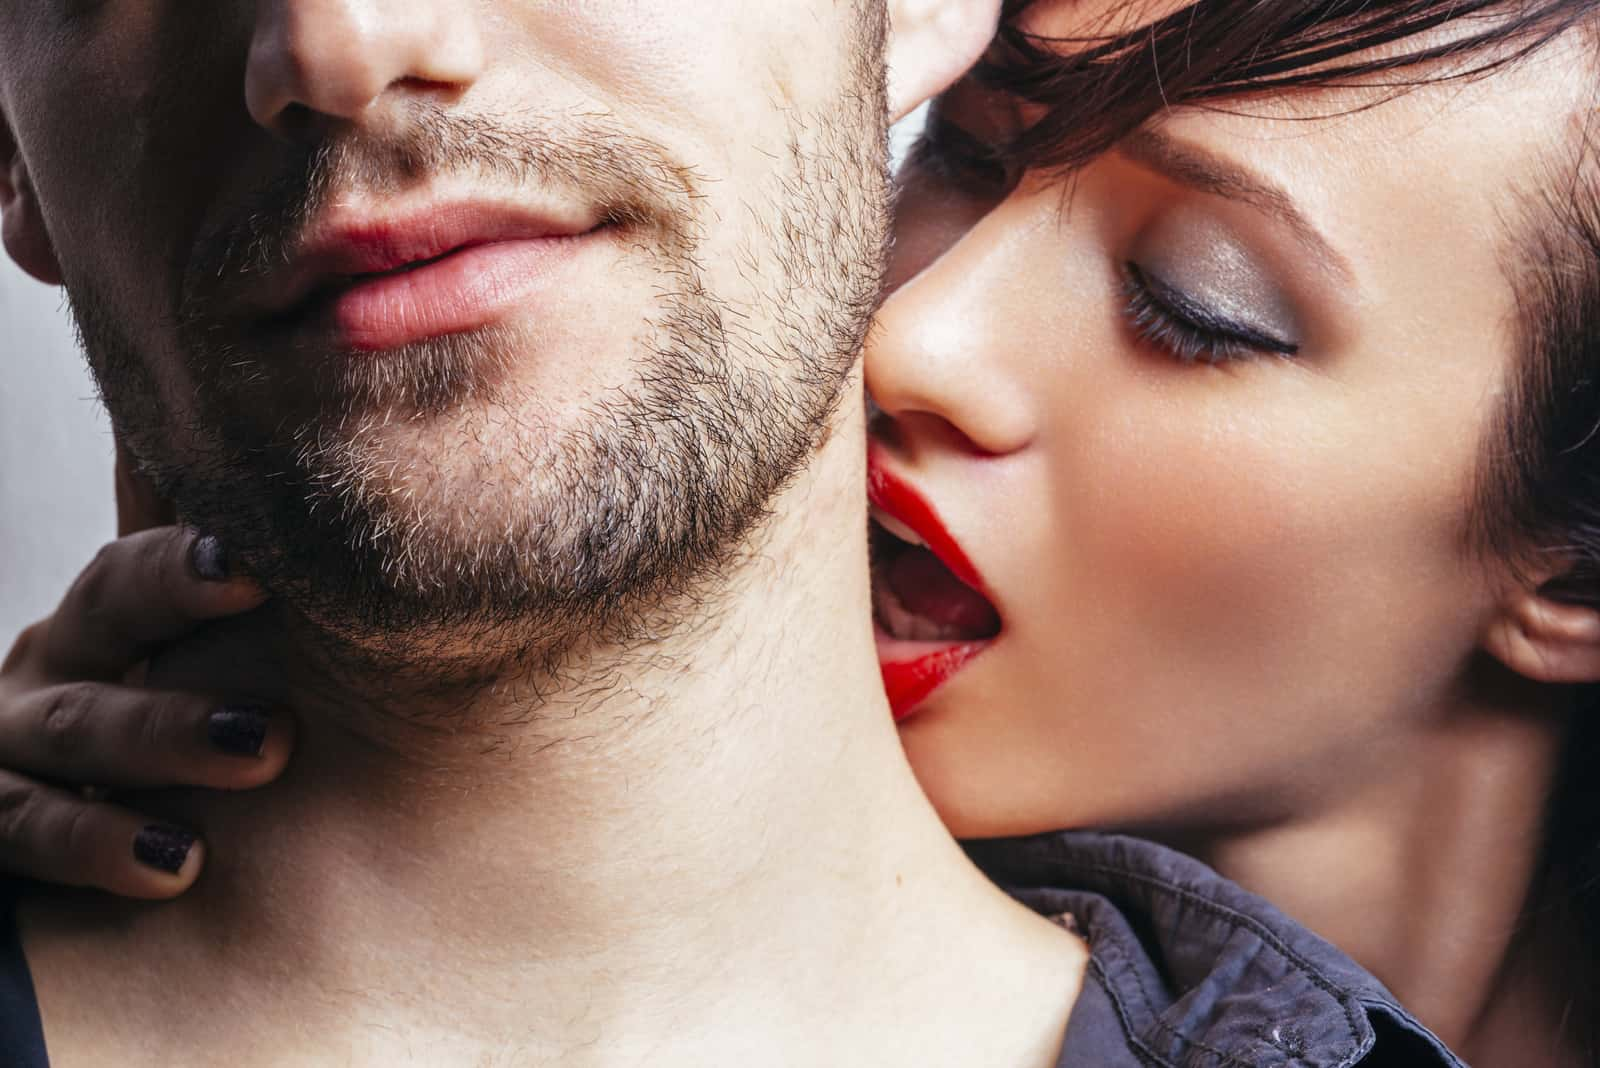 a woman kisses a man on the neck